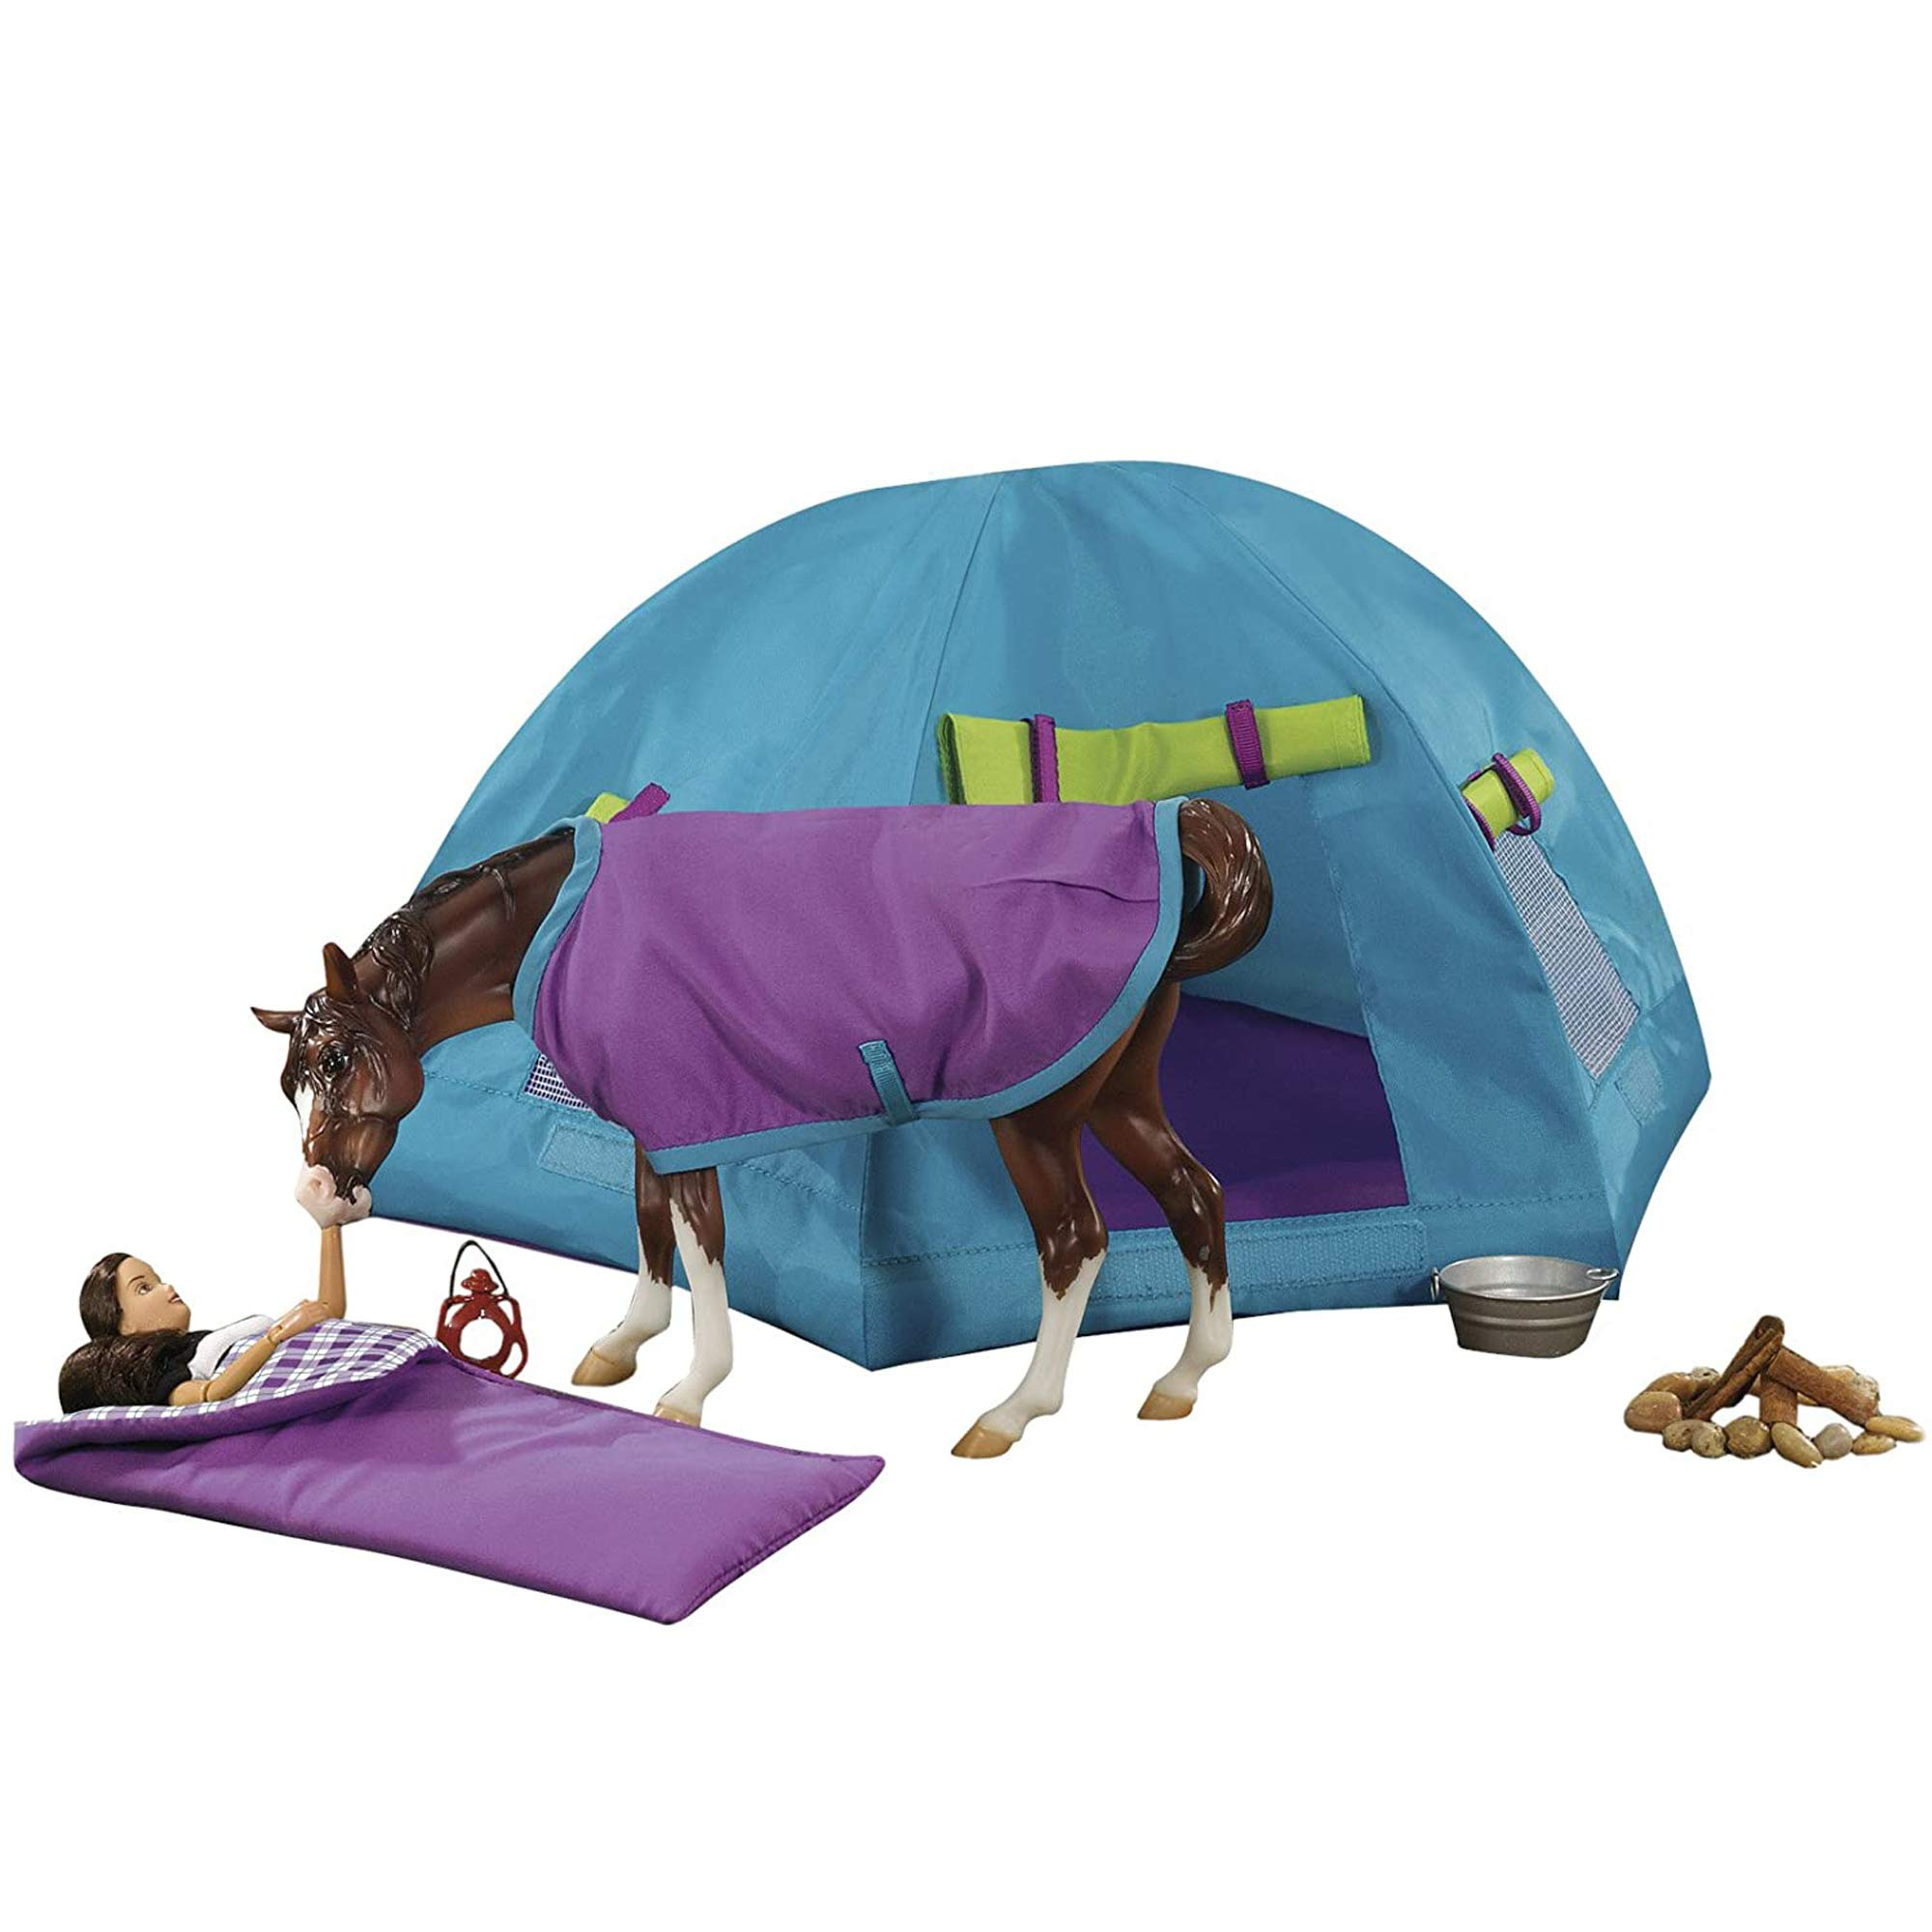 Breyer Horses Traditional Series Accessory | Backcountry Camping Set | Horse Toy Gift Set | Model #1380 (1:9 Scale),Multi-colored